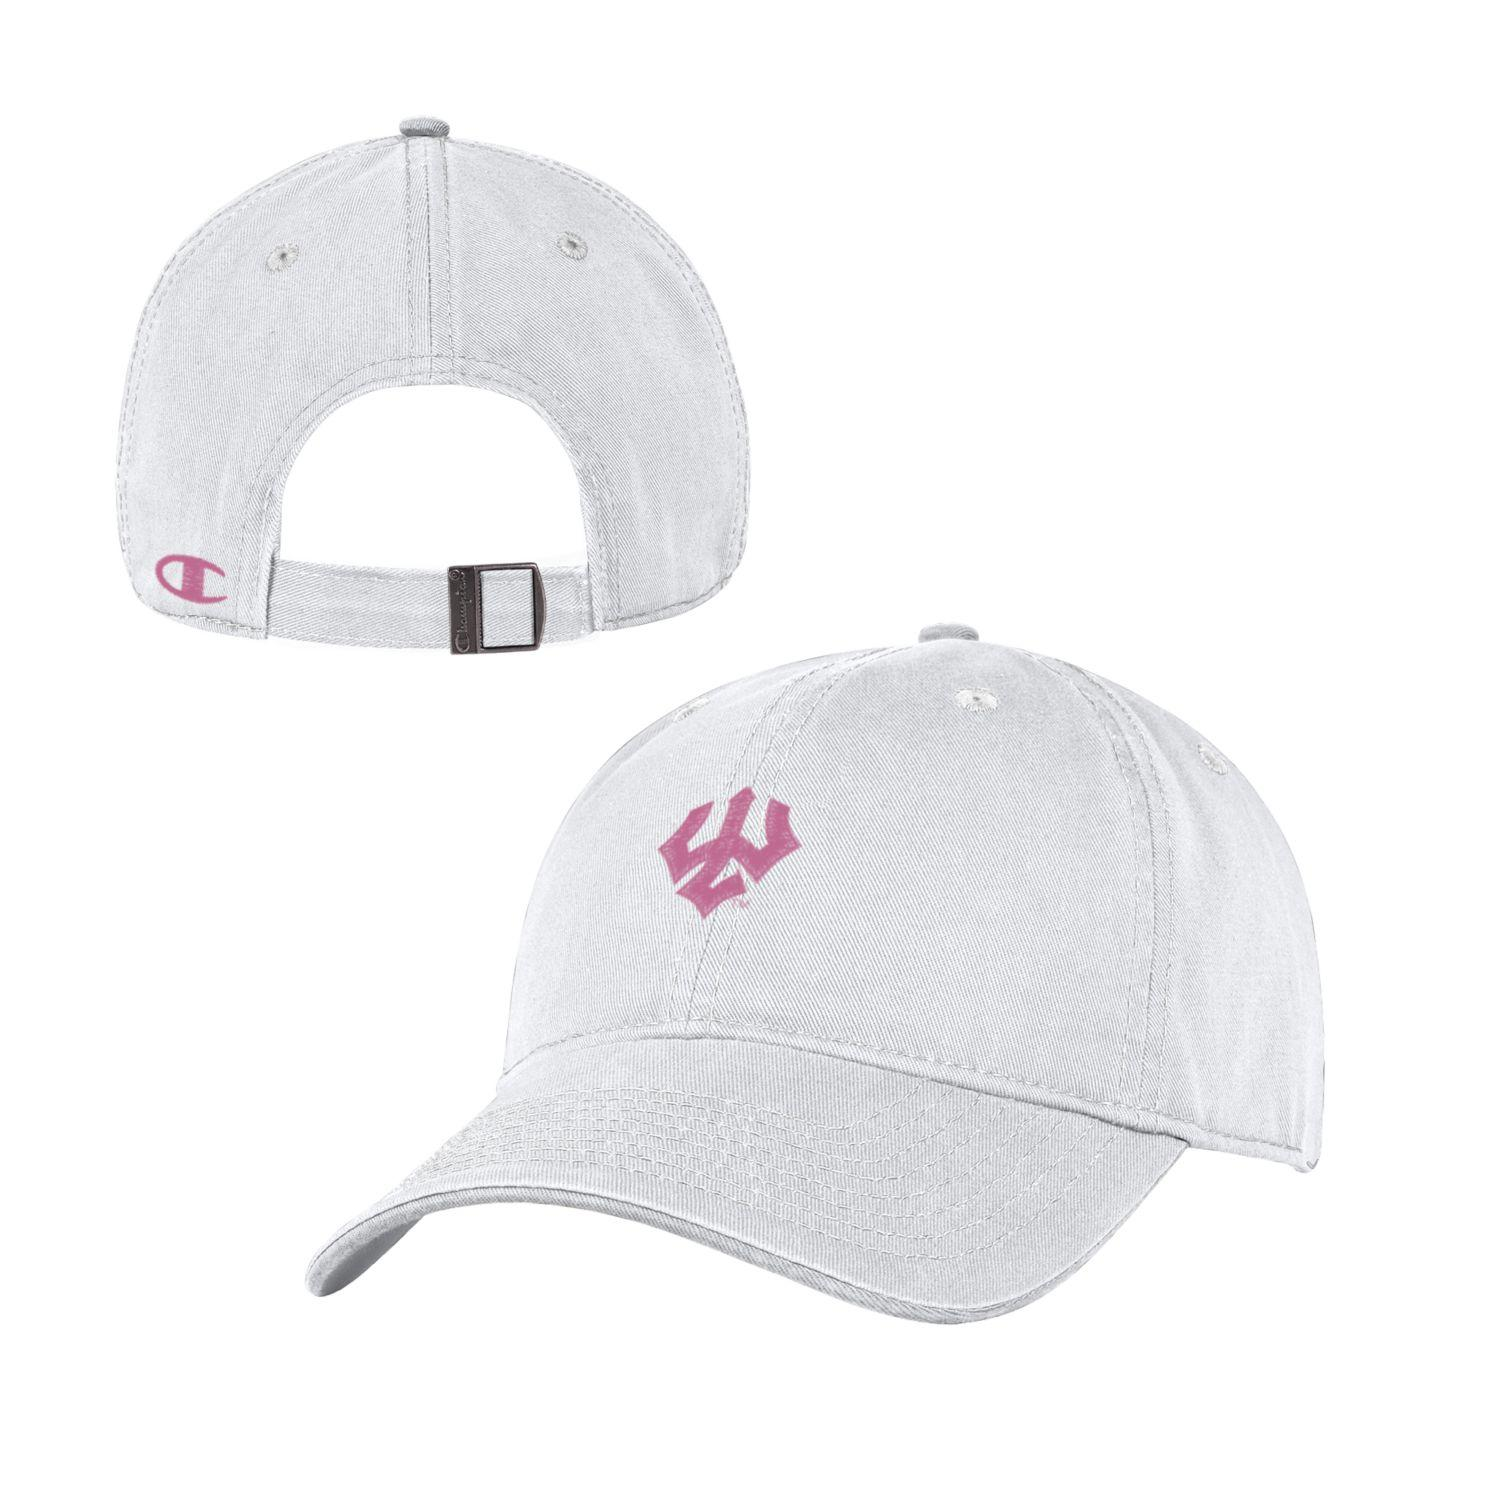 Image For Champion White with Pink Trident Hat